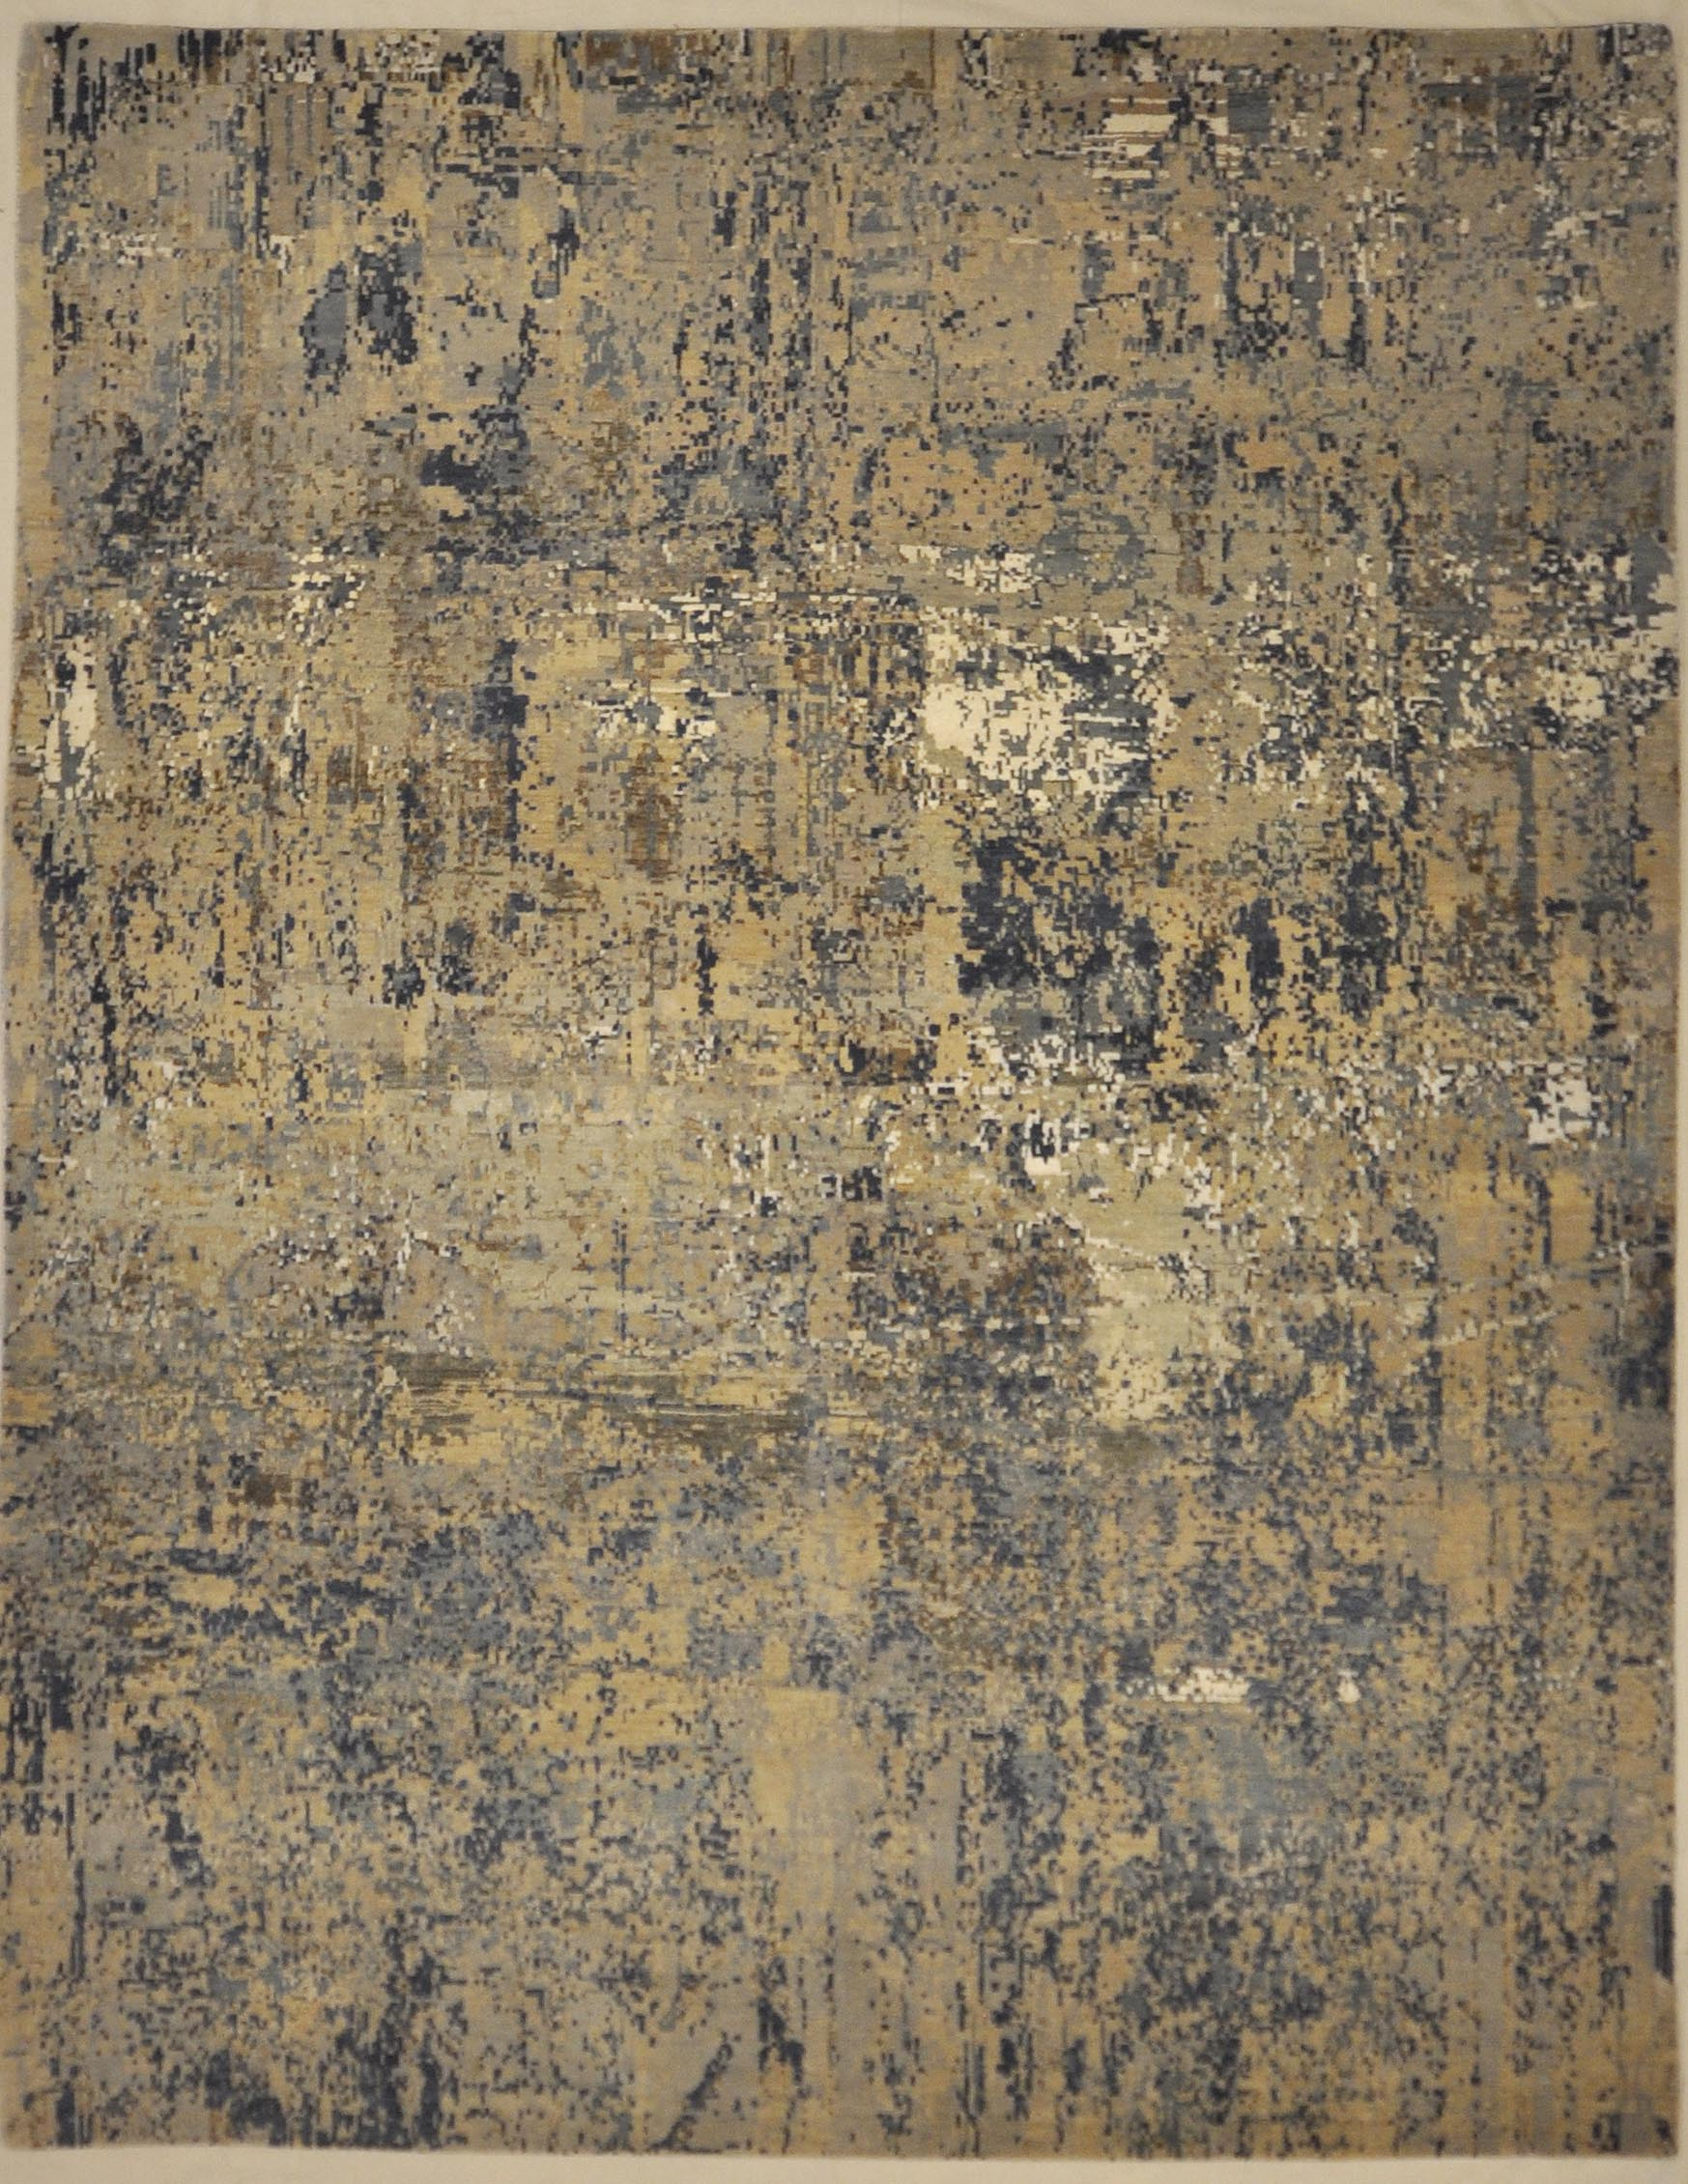 Multry Modern Rugs and more oriental carpet 30535-